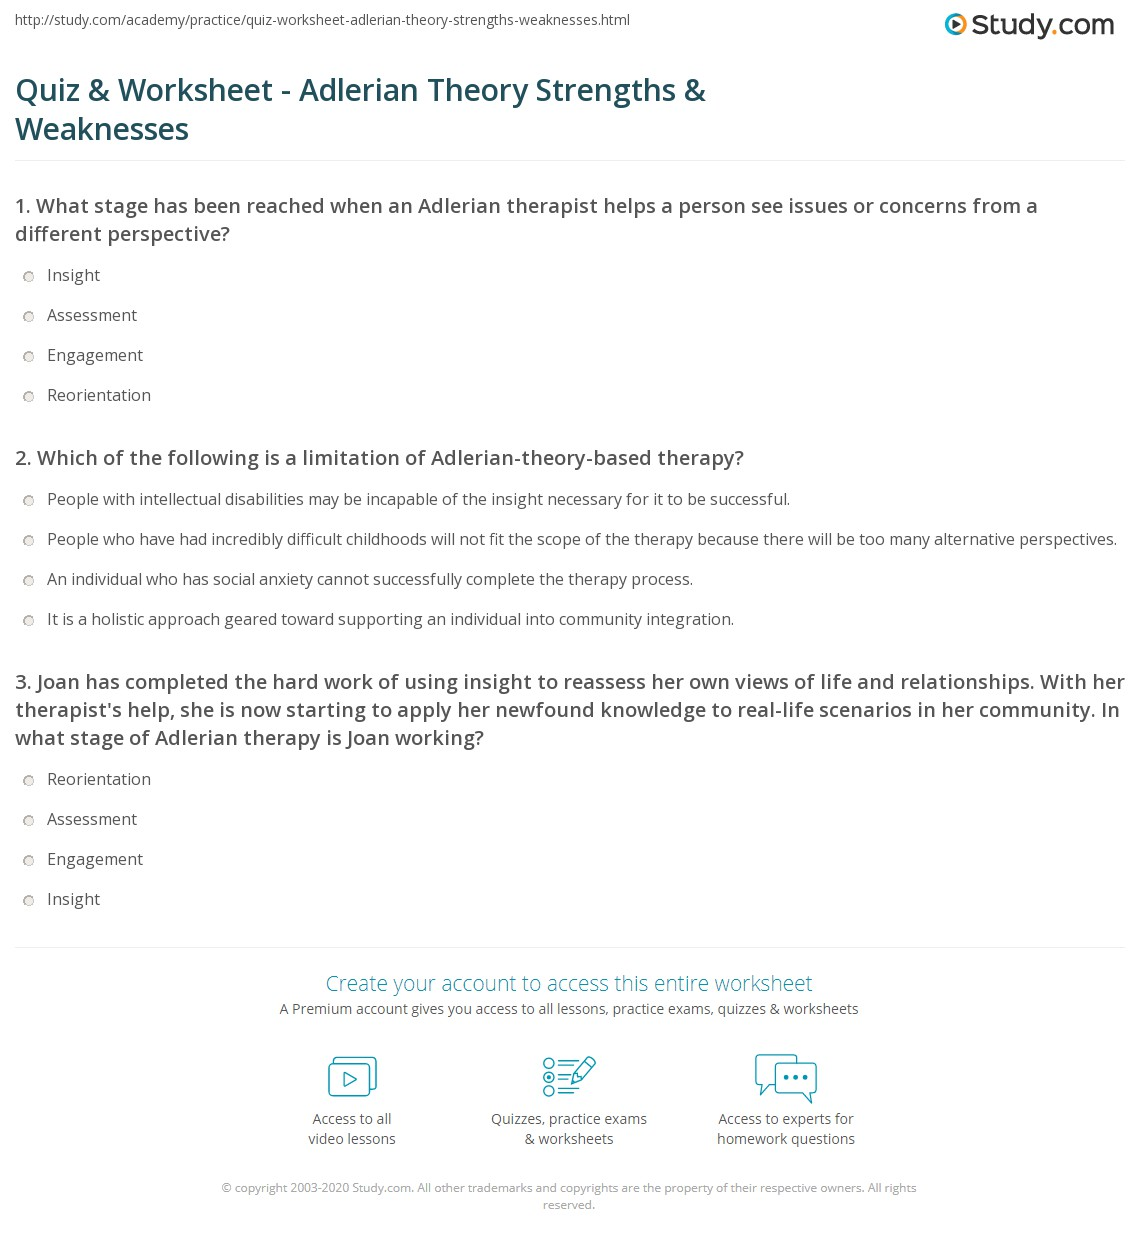 the strengths and weakness of adlerian Adlerian analysis and framework this paper will explore, in detail, the adlerian school of thought on therapy alfred adler, who developed this theory, had very specific ideas dealing with philosophy, human nature, theory of change, and the role counselors should play in the therapeutic process.